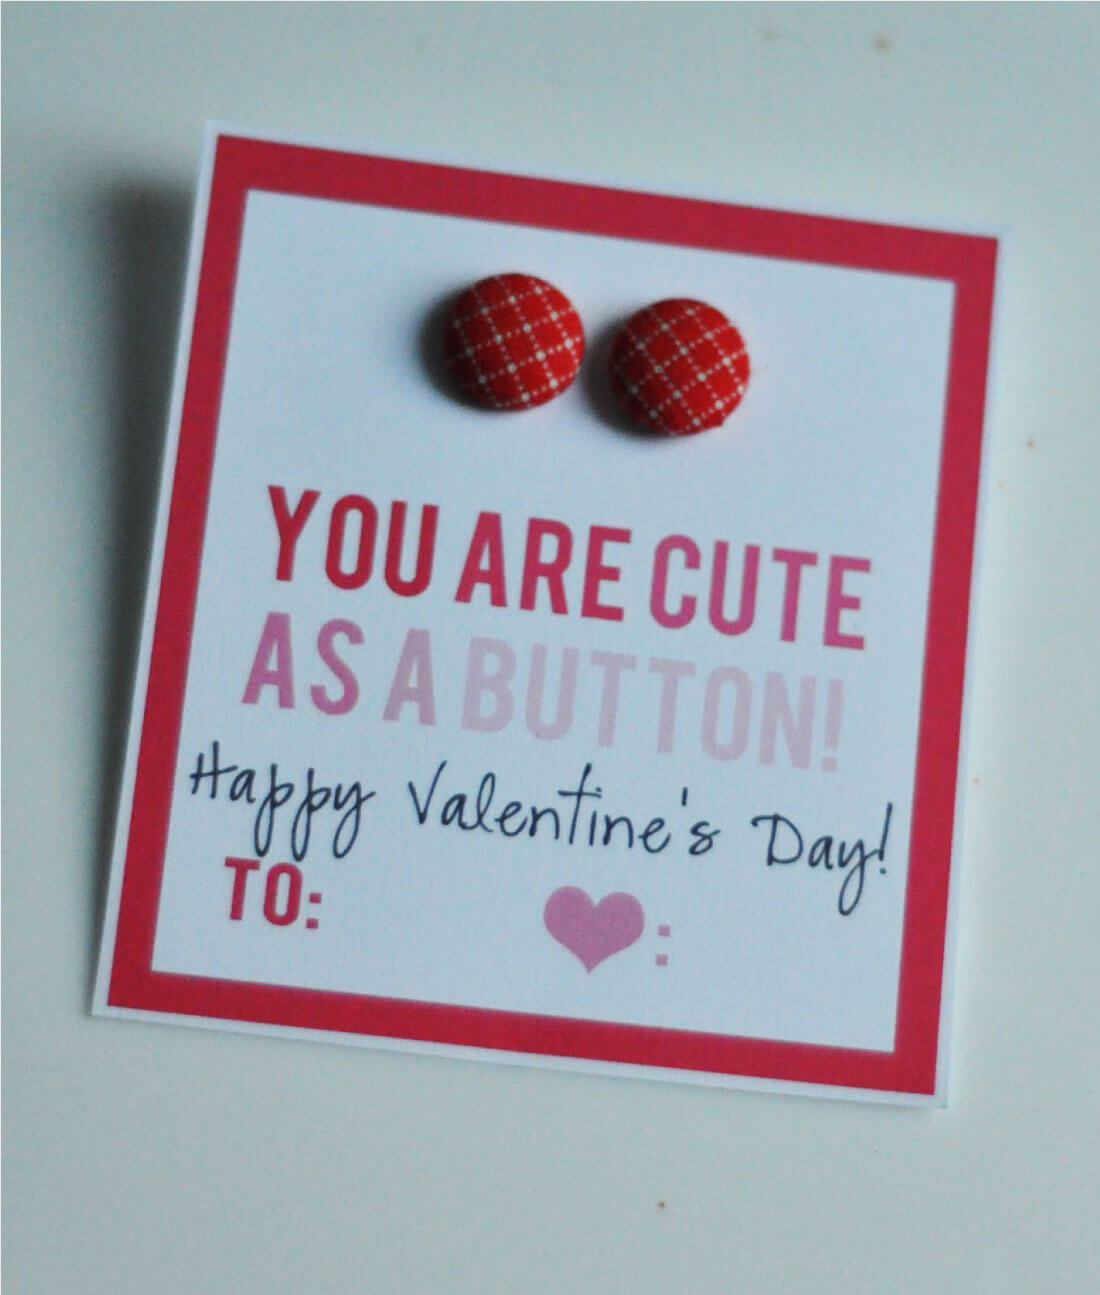 Cute as a button printable Valentine's Day Idea